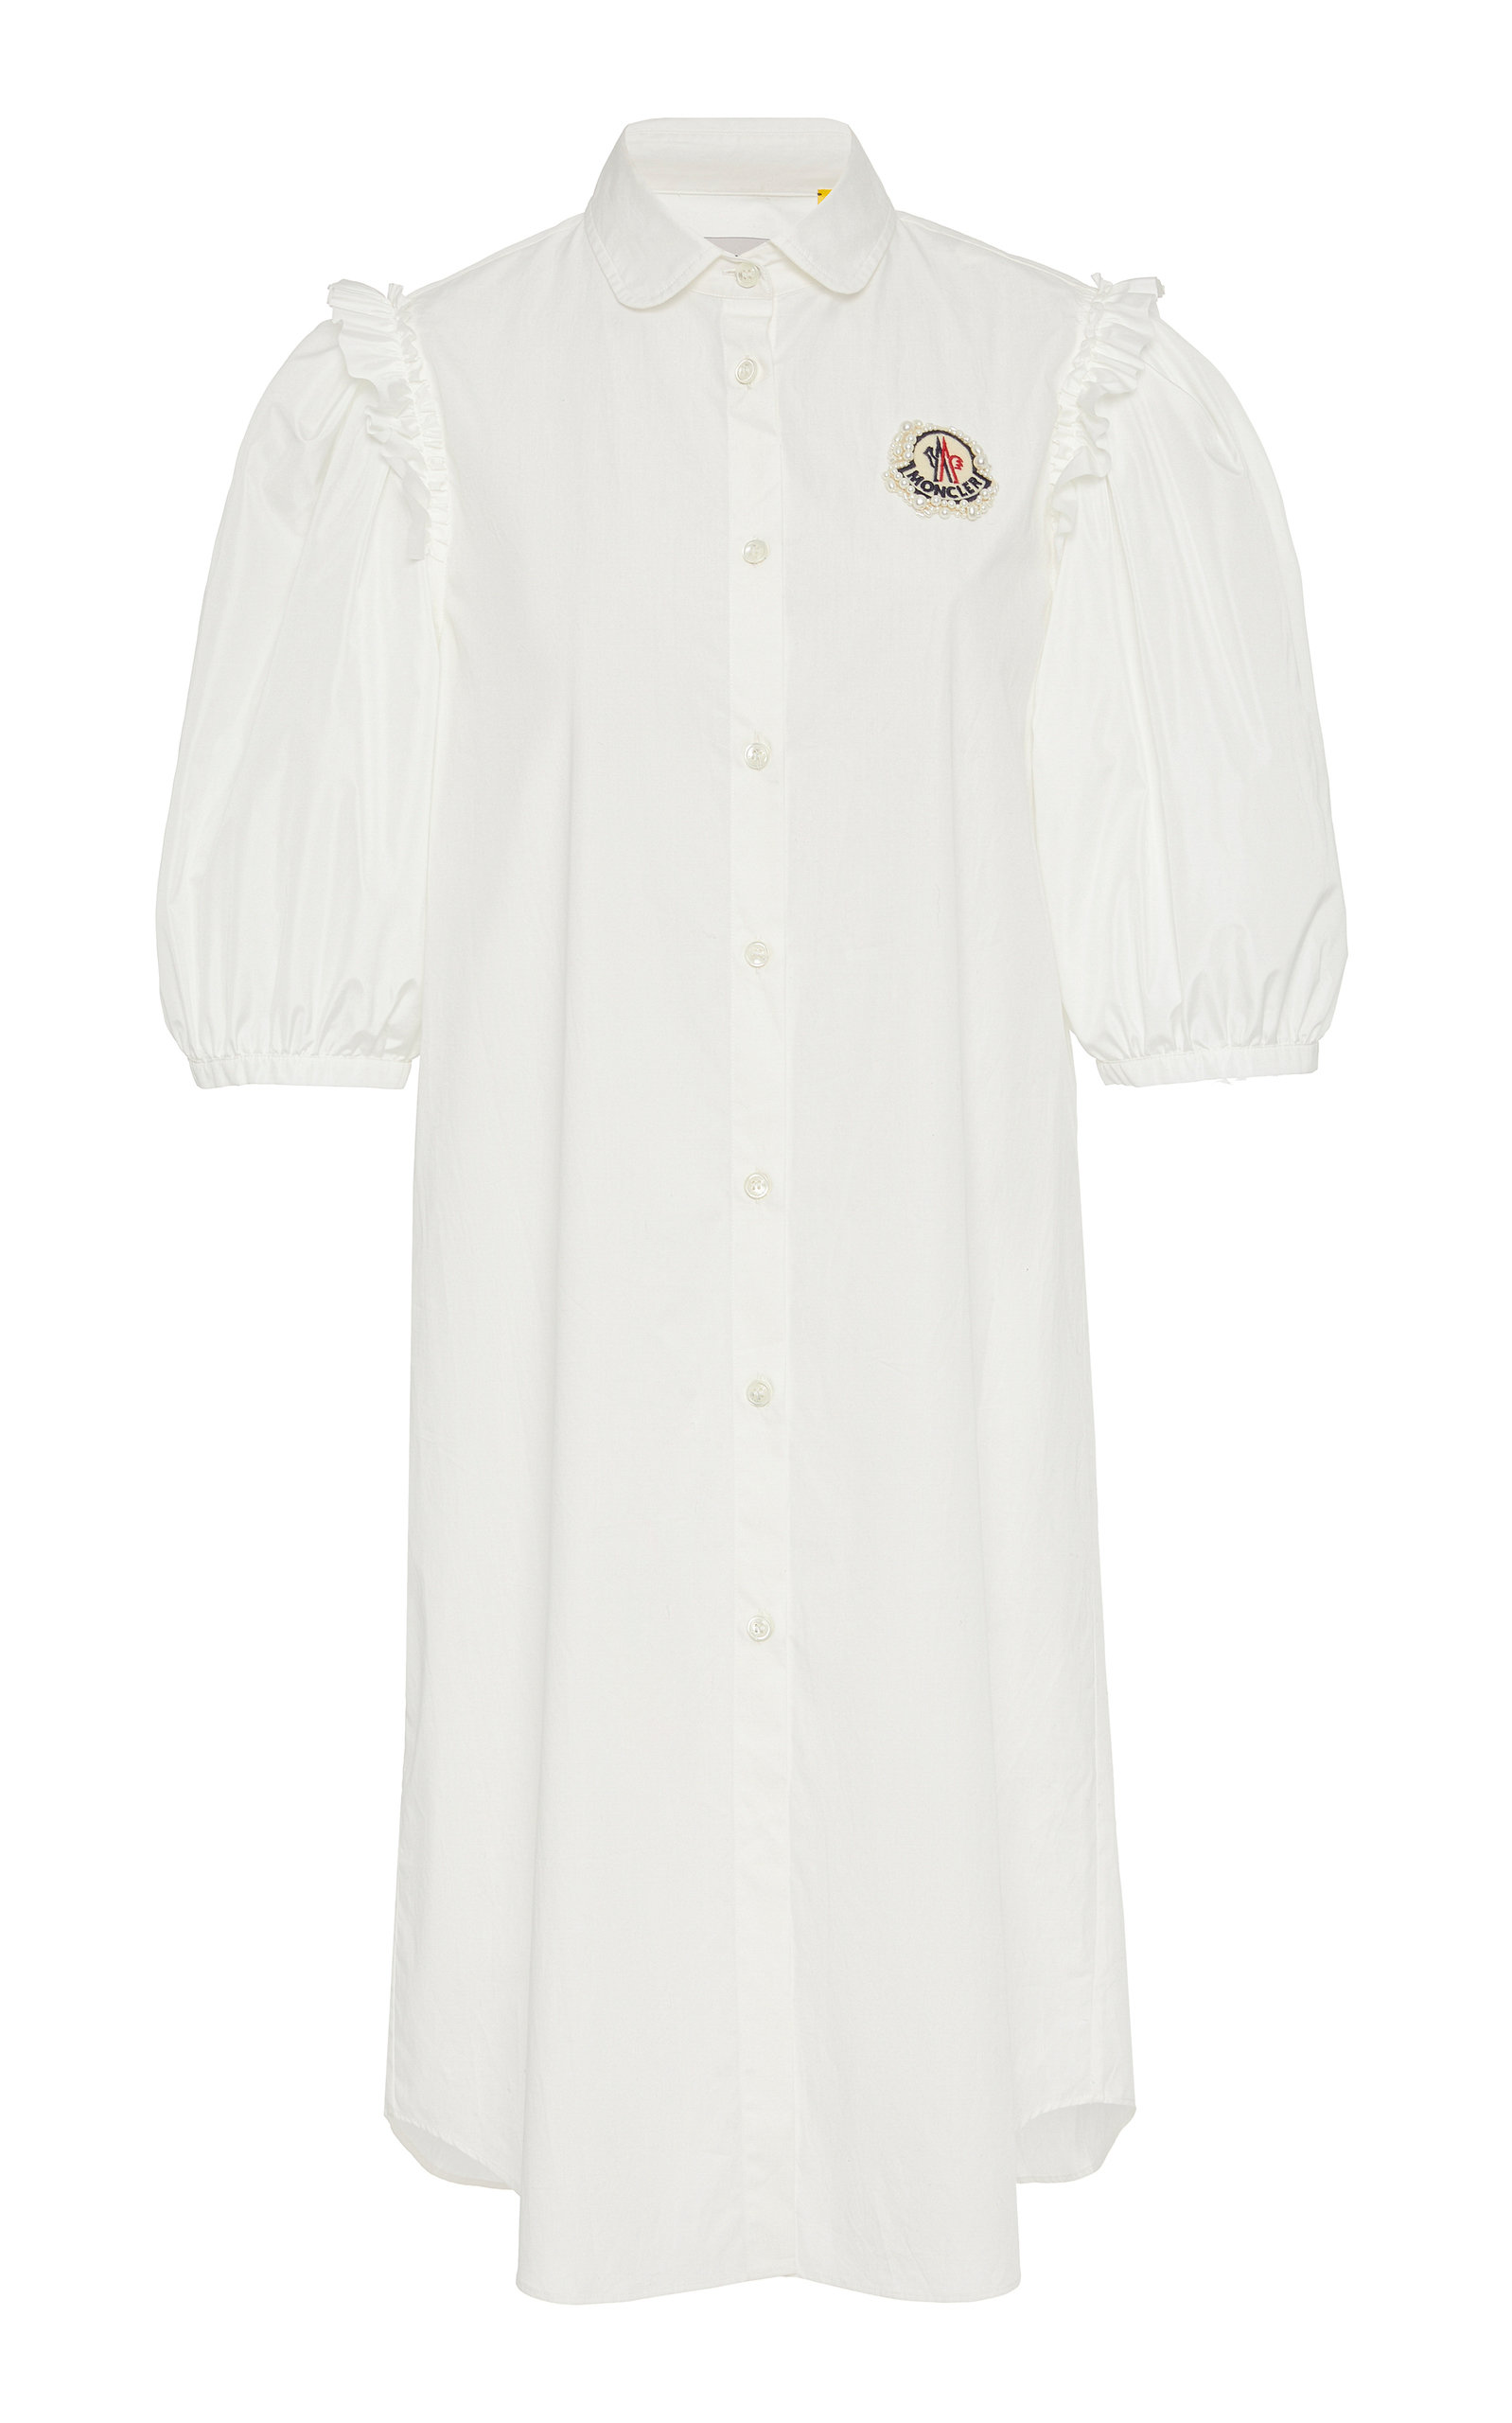 6478a520a63 Moncler Genius 4 Moncler Simone Rocha Camicia Embellished Cotton Shirt Dress  With Ruffles In White